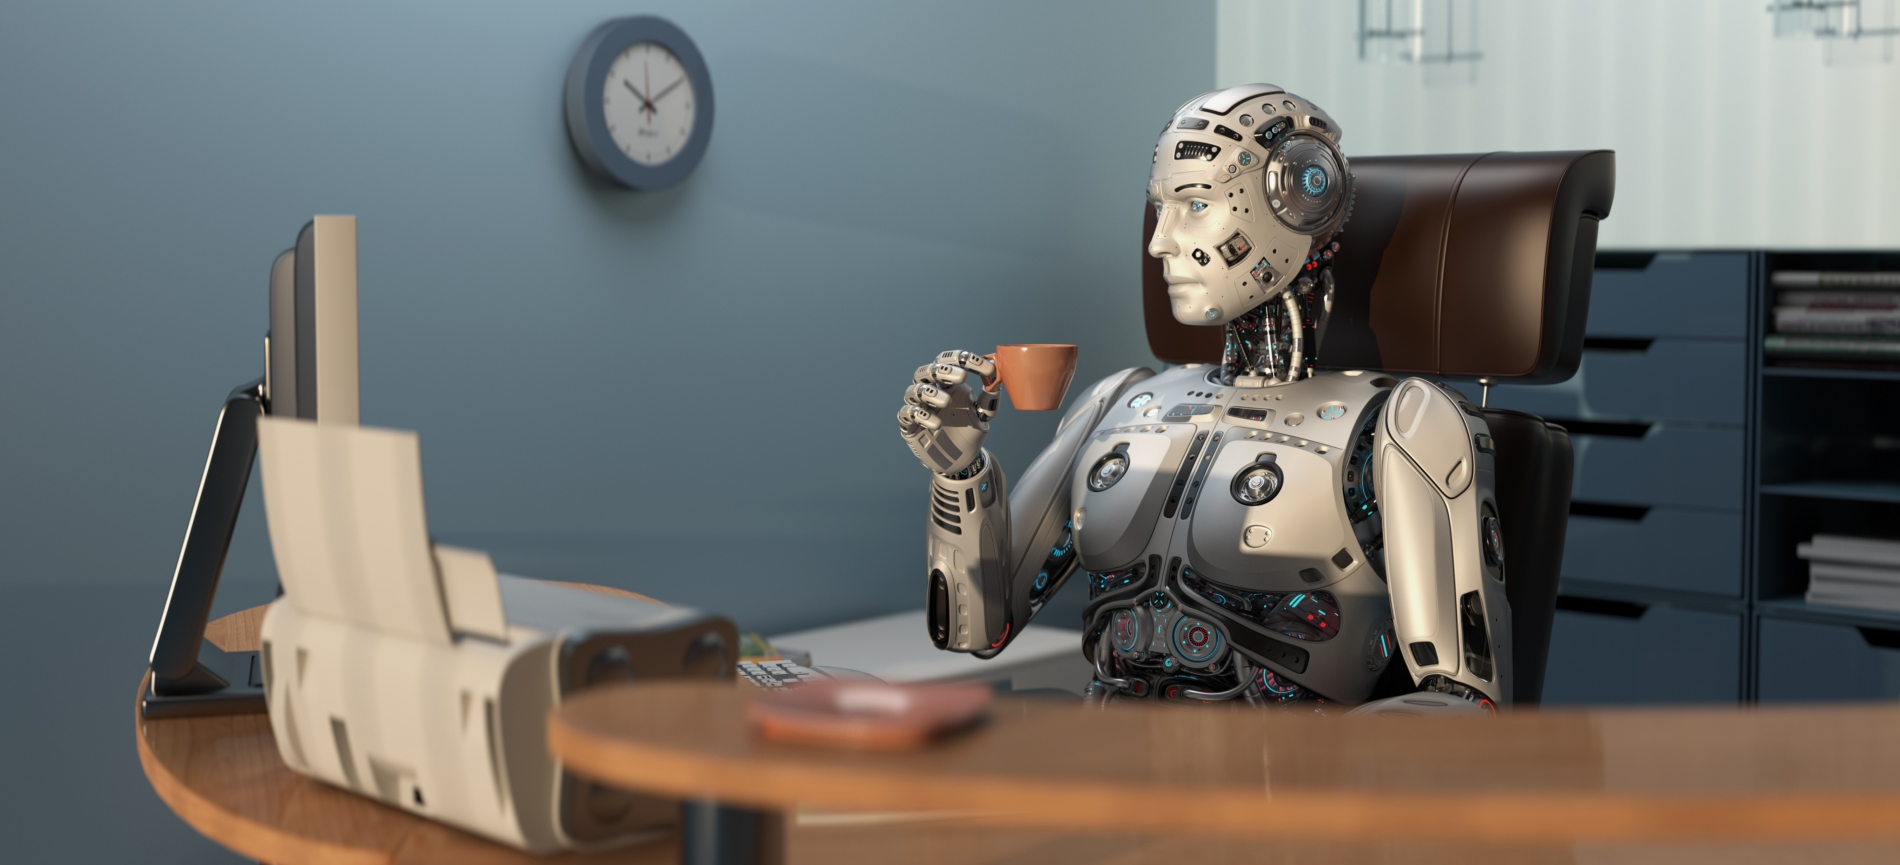 Futuristic robot holding a cup of tea while sitting in the office